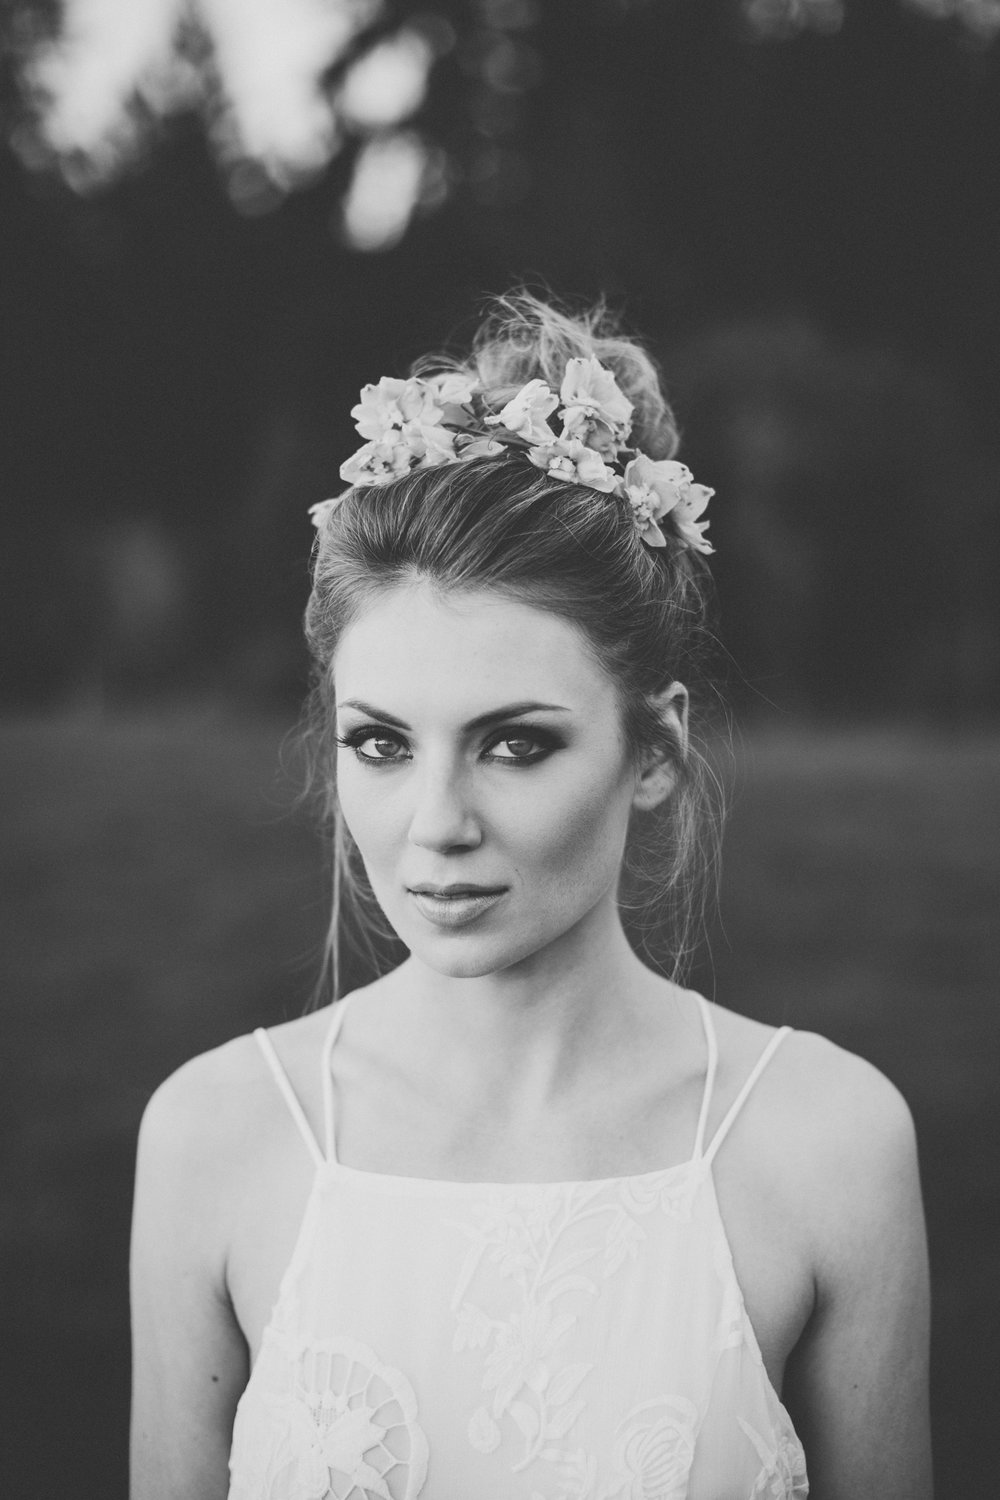 Bridal-Beauty-Shoot-2015-3389-Squarespace.jpg